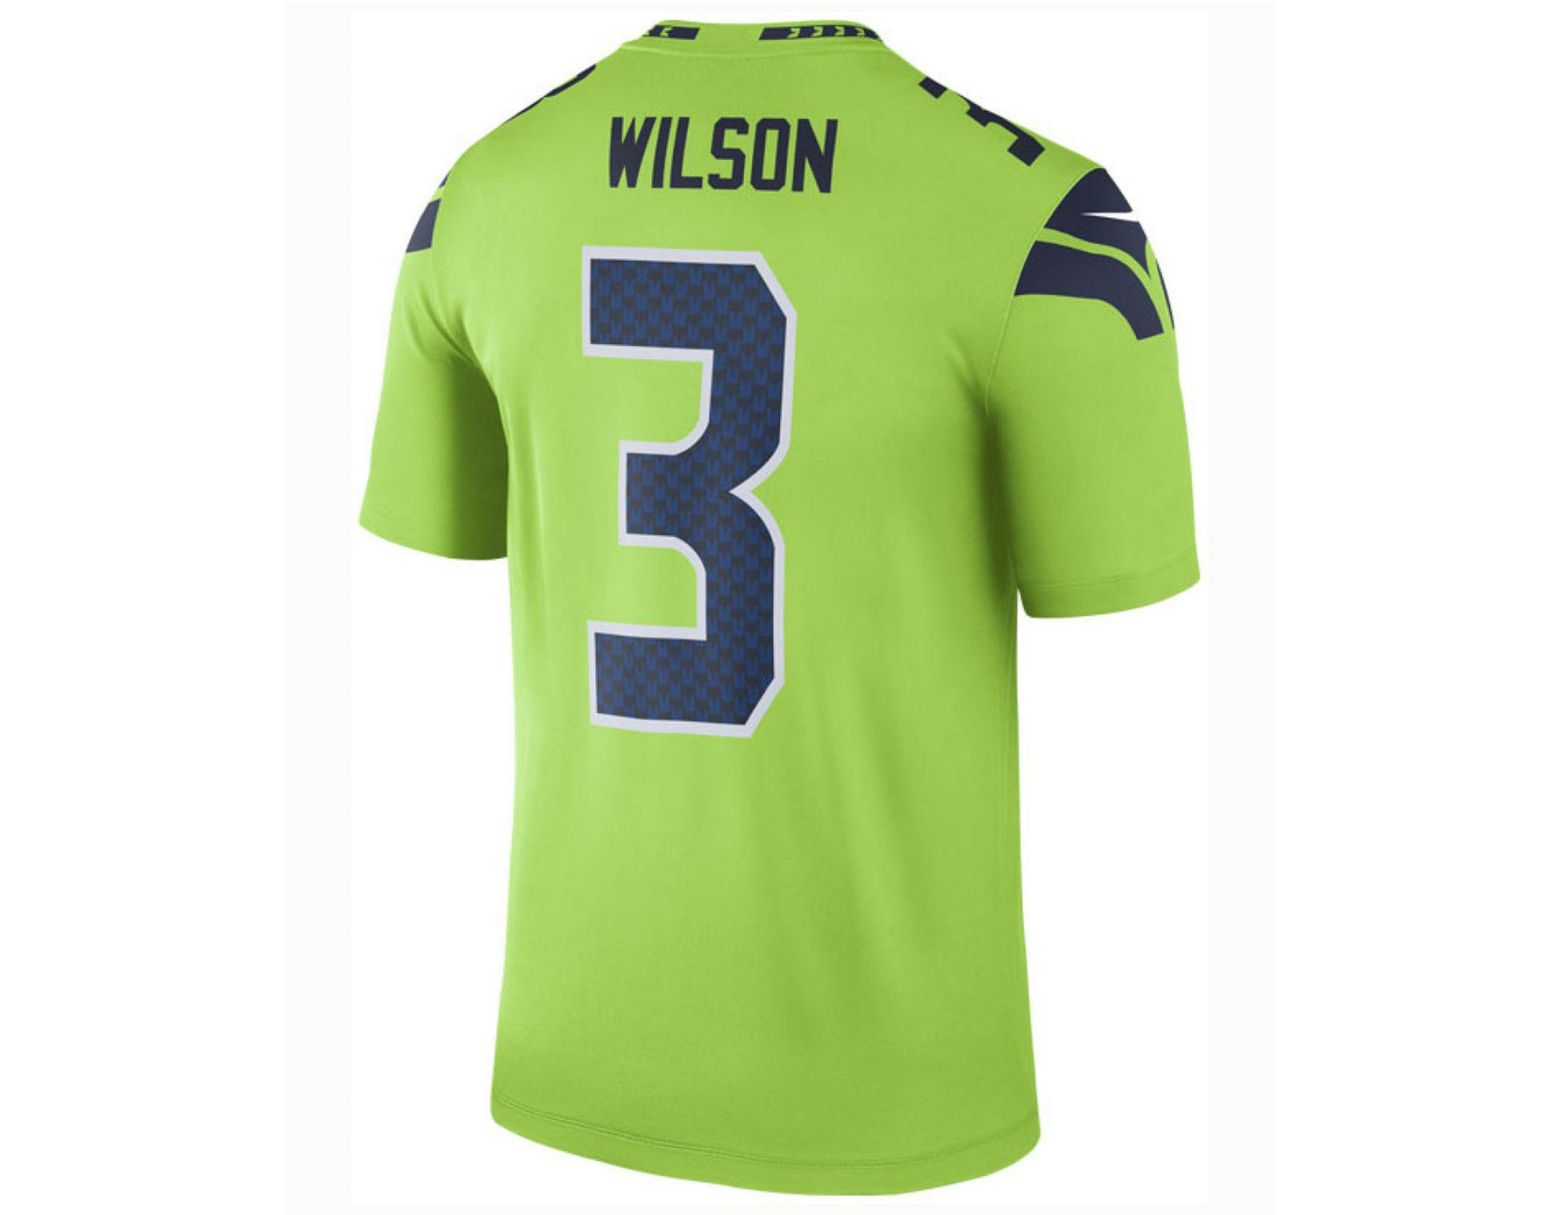 new concept 2b631 a9aa6 Green Nfl Seattle Seahawks Color Rush Limited (russell Wilson) Men's  Football Jersey